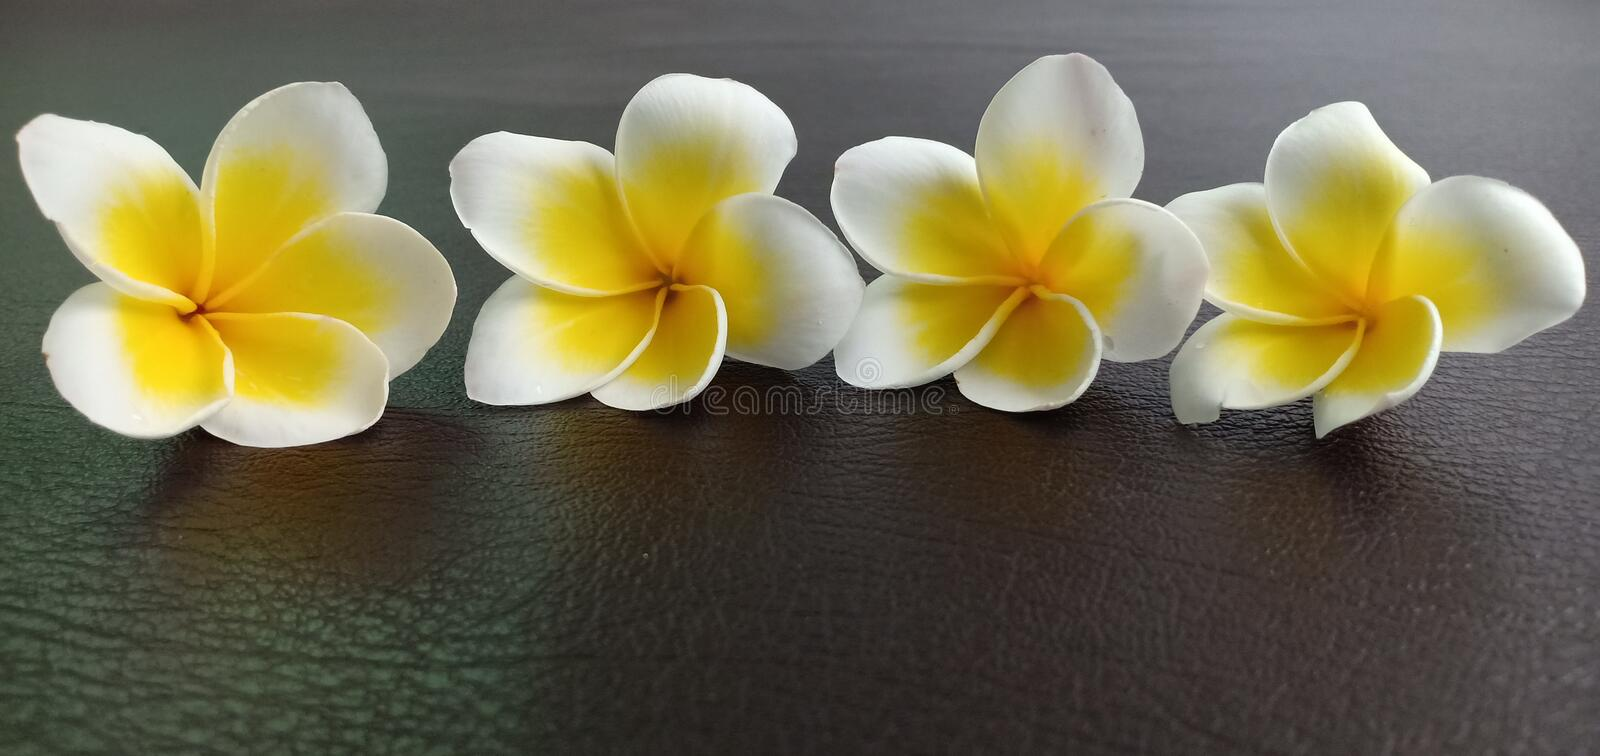 Champaka white flowers. On the leather floor royalty free stock photos